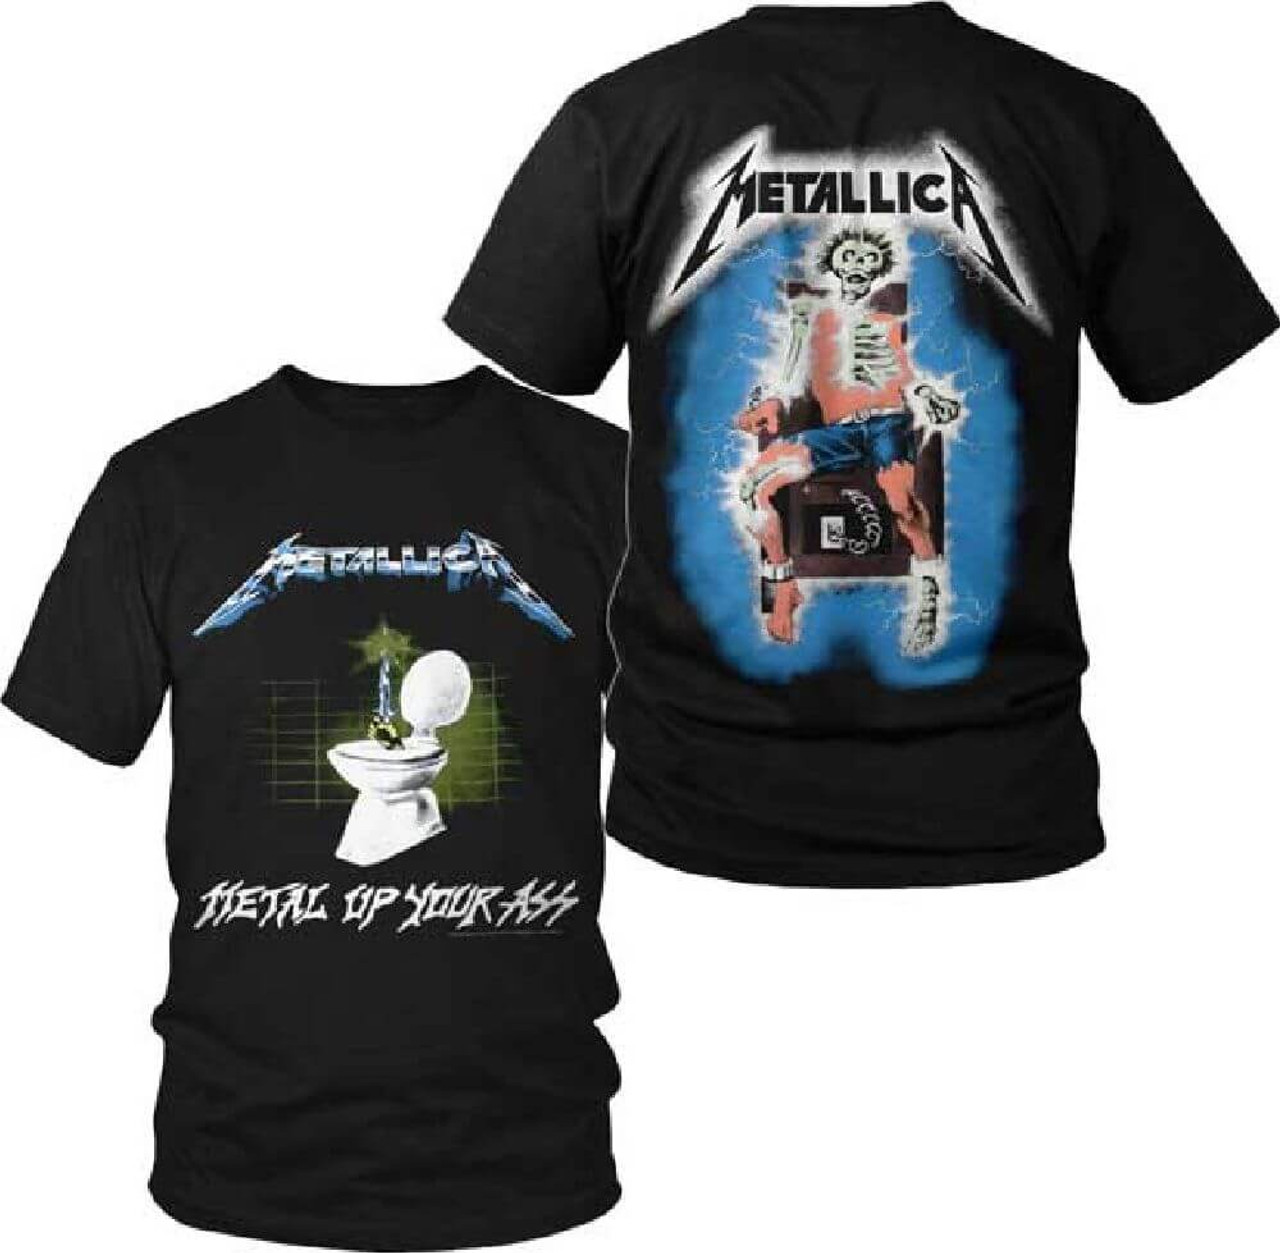 Metallica Metal Up Your Ass Album Cover With Electrocuted Man T Shirt